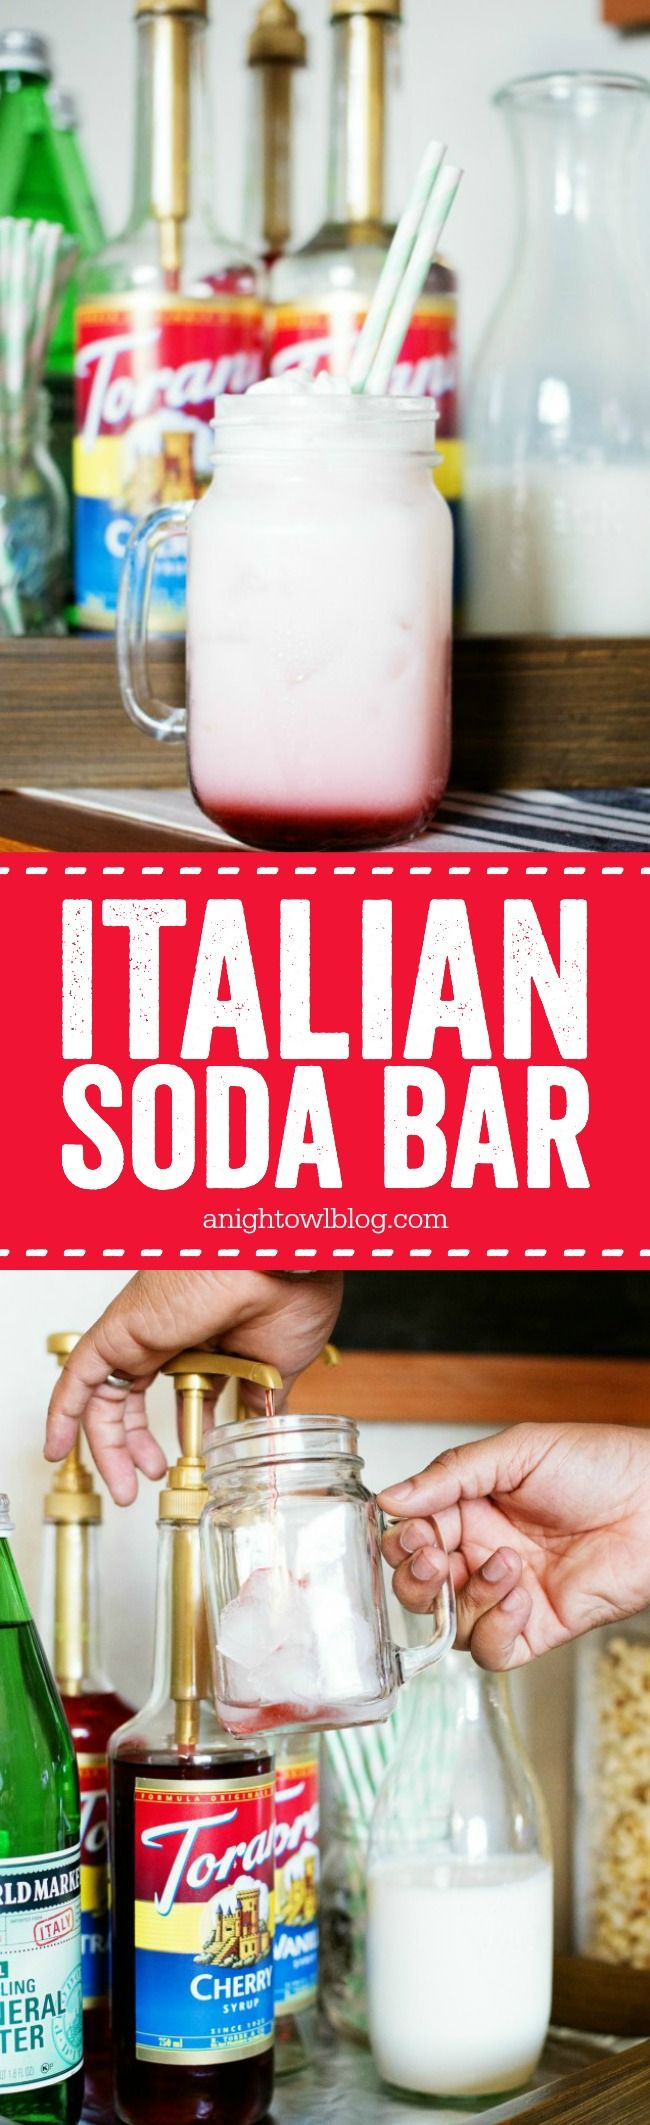 Perfect for Game Day! Put together a Torani Italian Soda Bar - delicious and fun for guests! Free printable instructions. #WorldMarketTribe